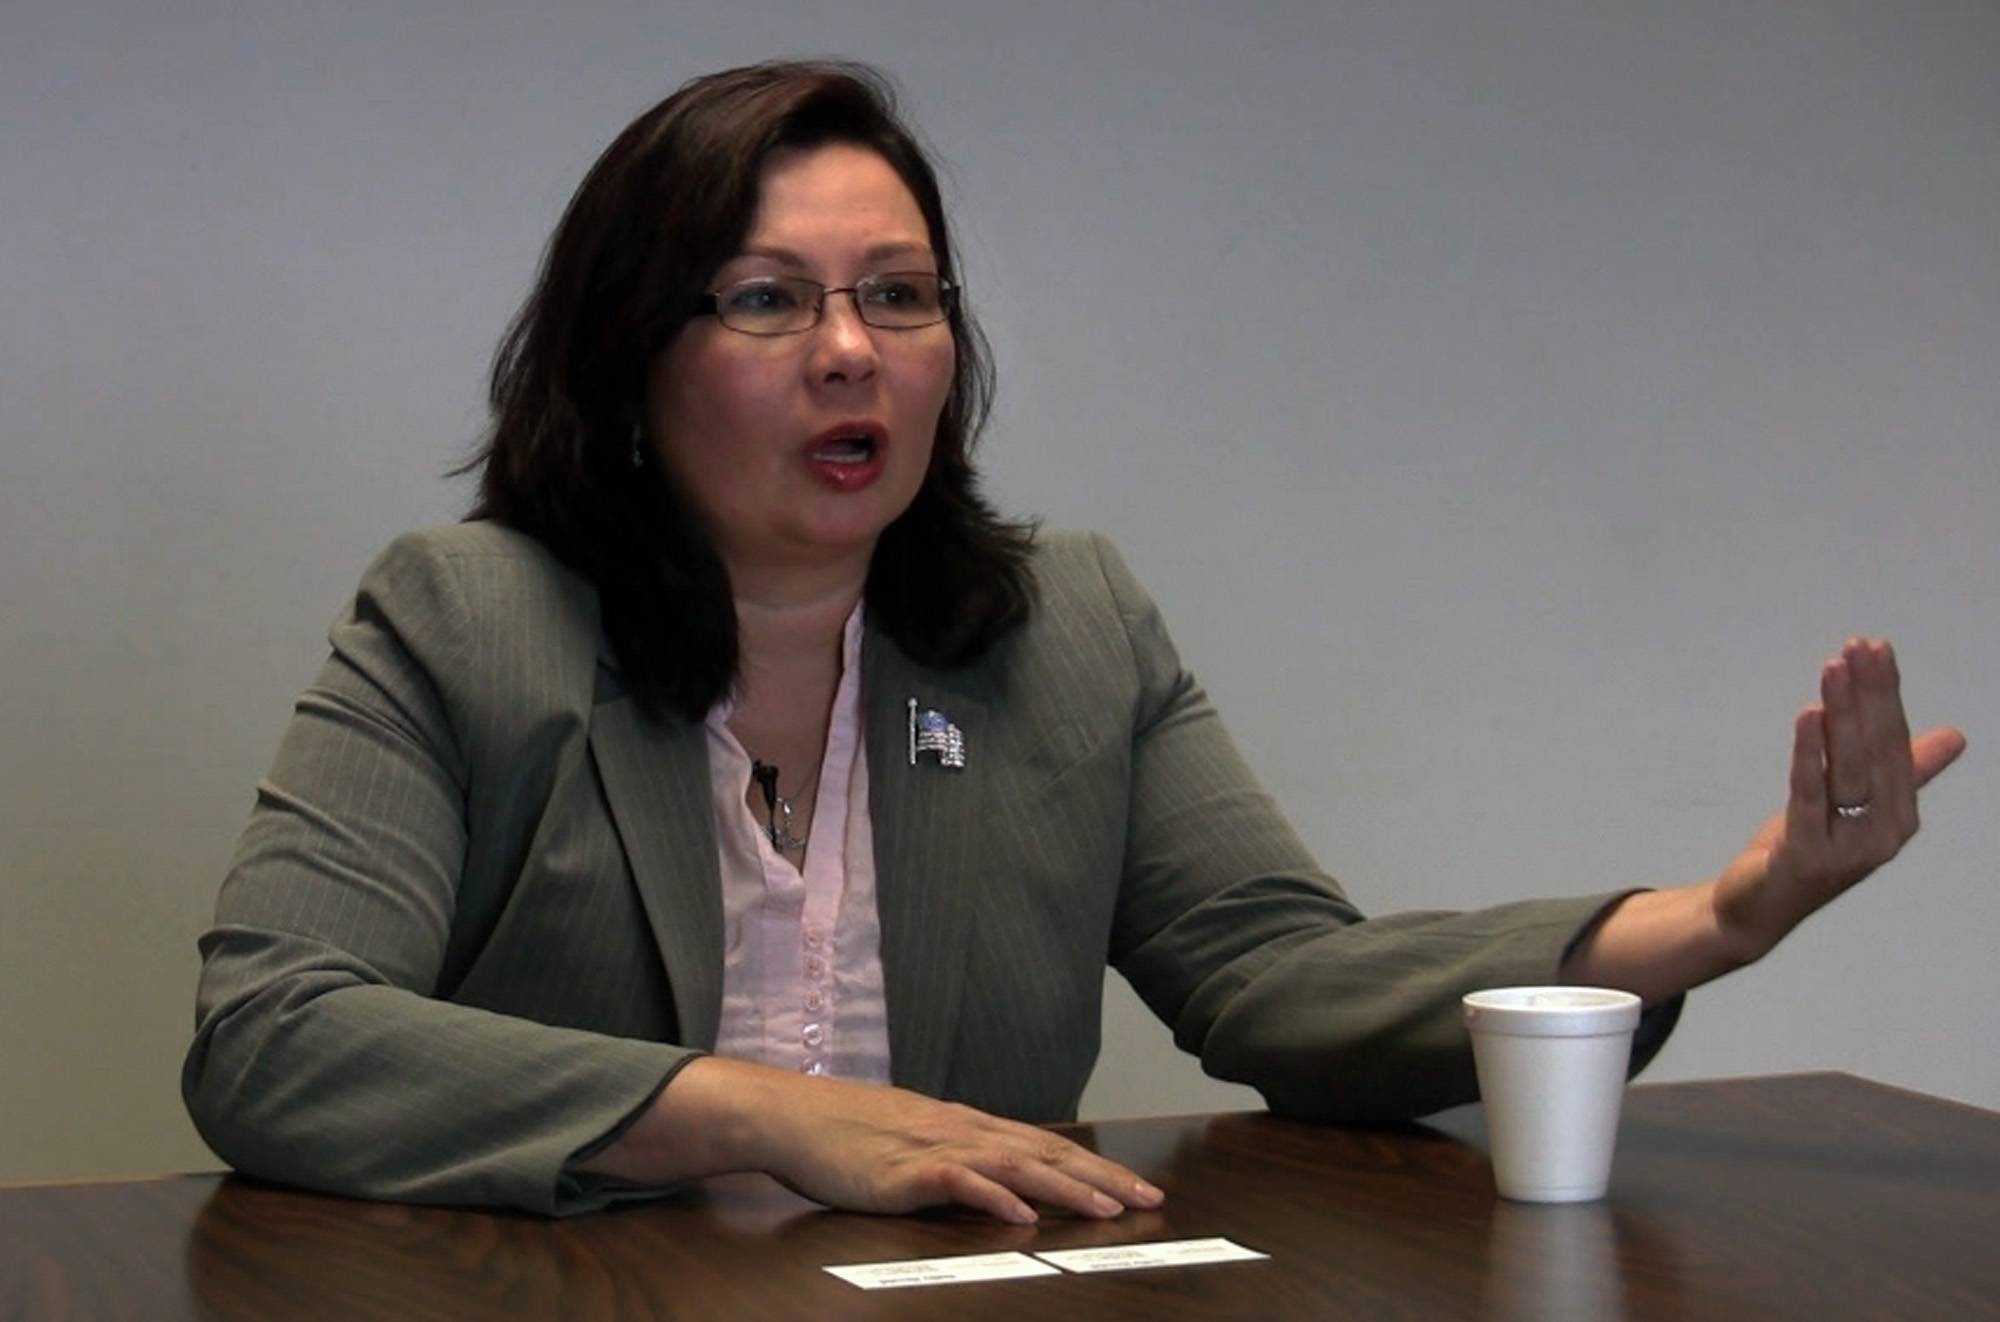 A whistle-blower case that dates to U.S. Rep. Tammy Duckworth's time with the Illinois Department of Veterans' Affairs will go to trial next year.